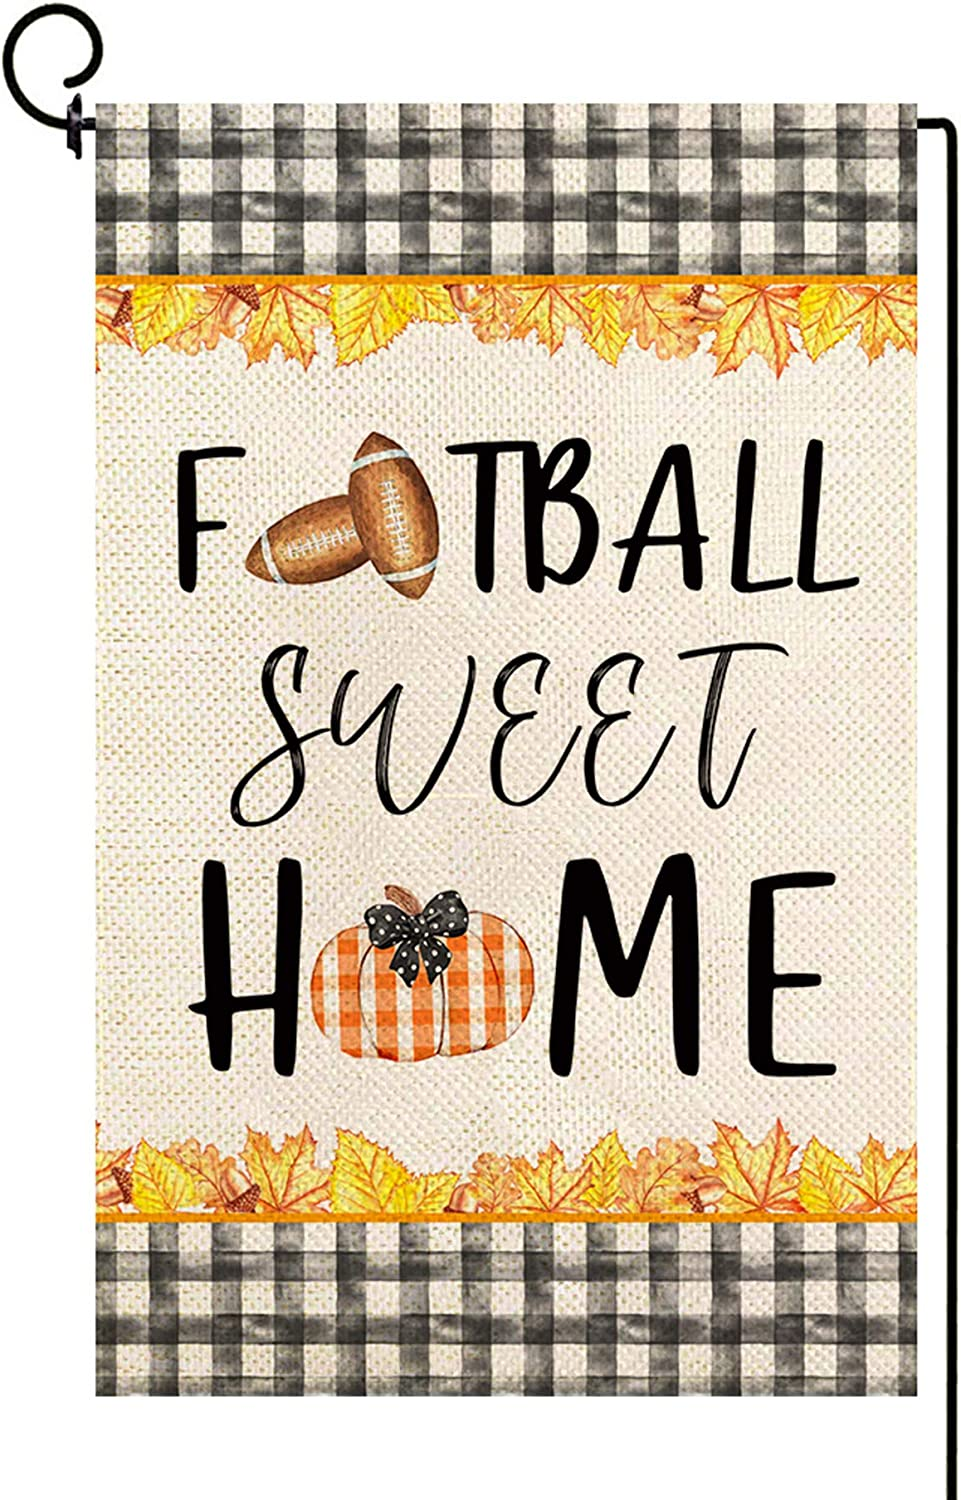 Baccessor Fall Garden Flag Football Sweet Home Autumn Small Yard Flag Vertical Double Sided Burlap Vintage Rustic Farmhouse House Home Lawn Outside Decoration 12.5 x 18 Inch